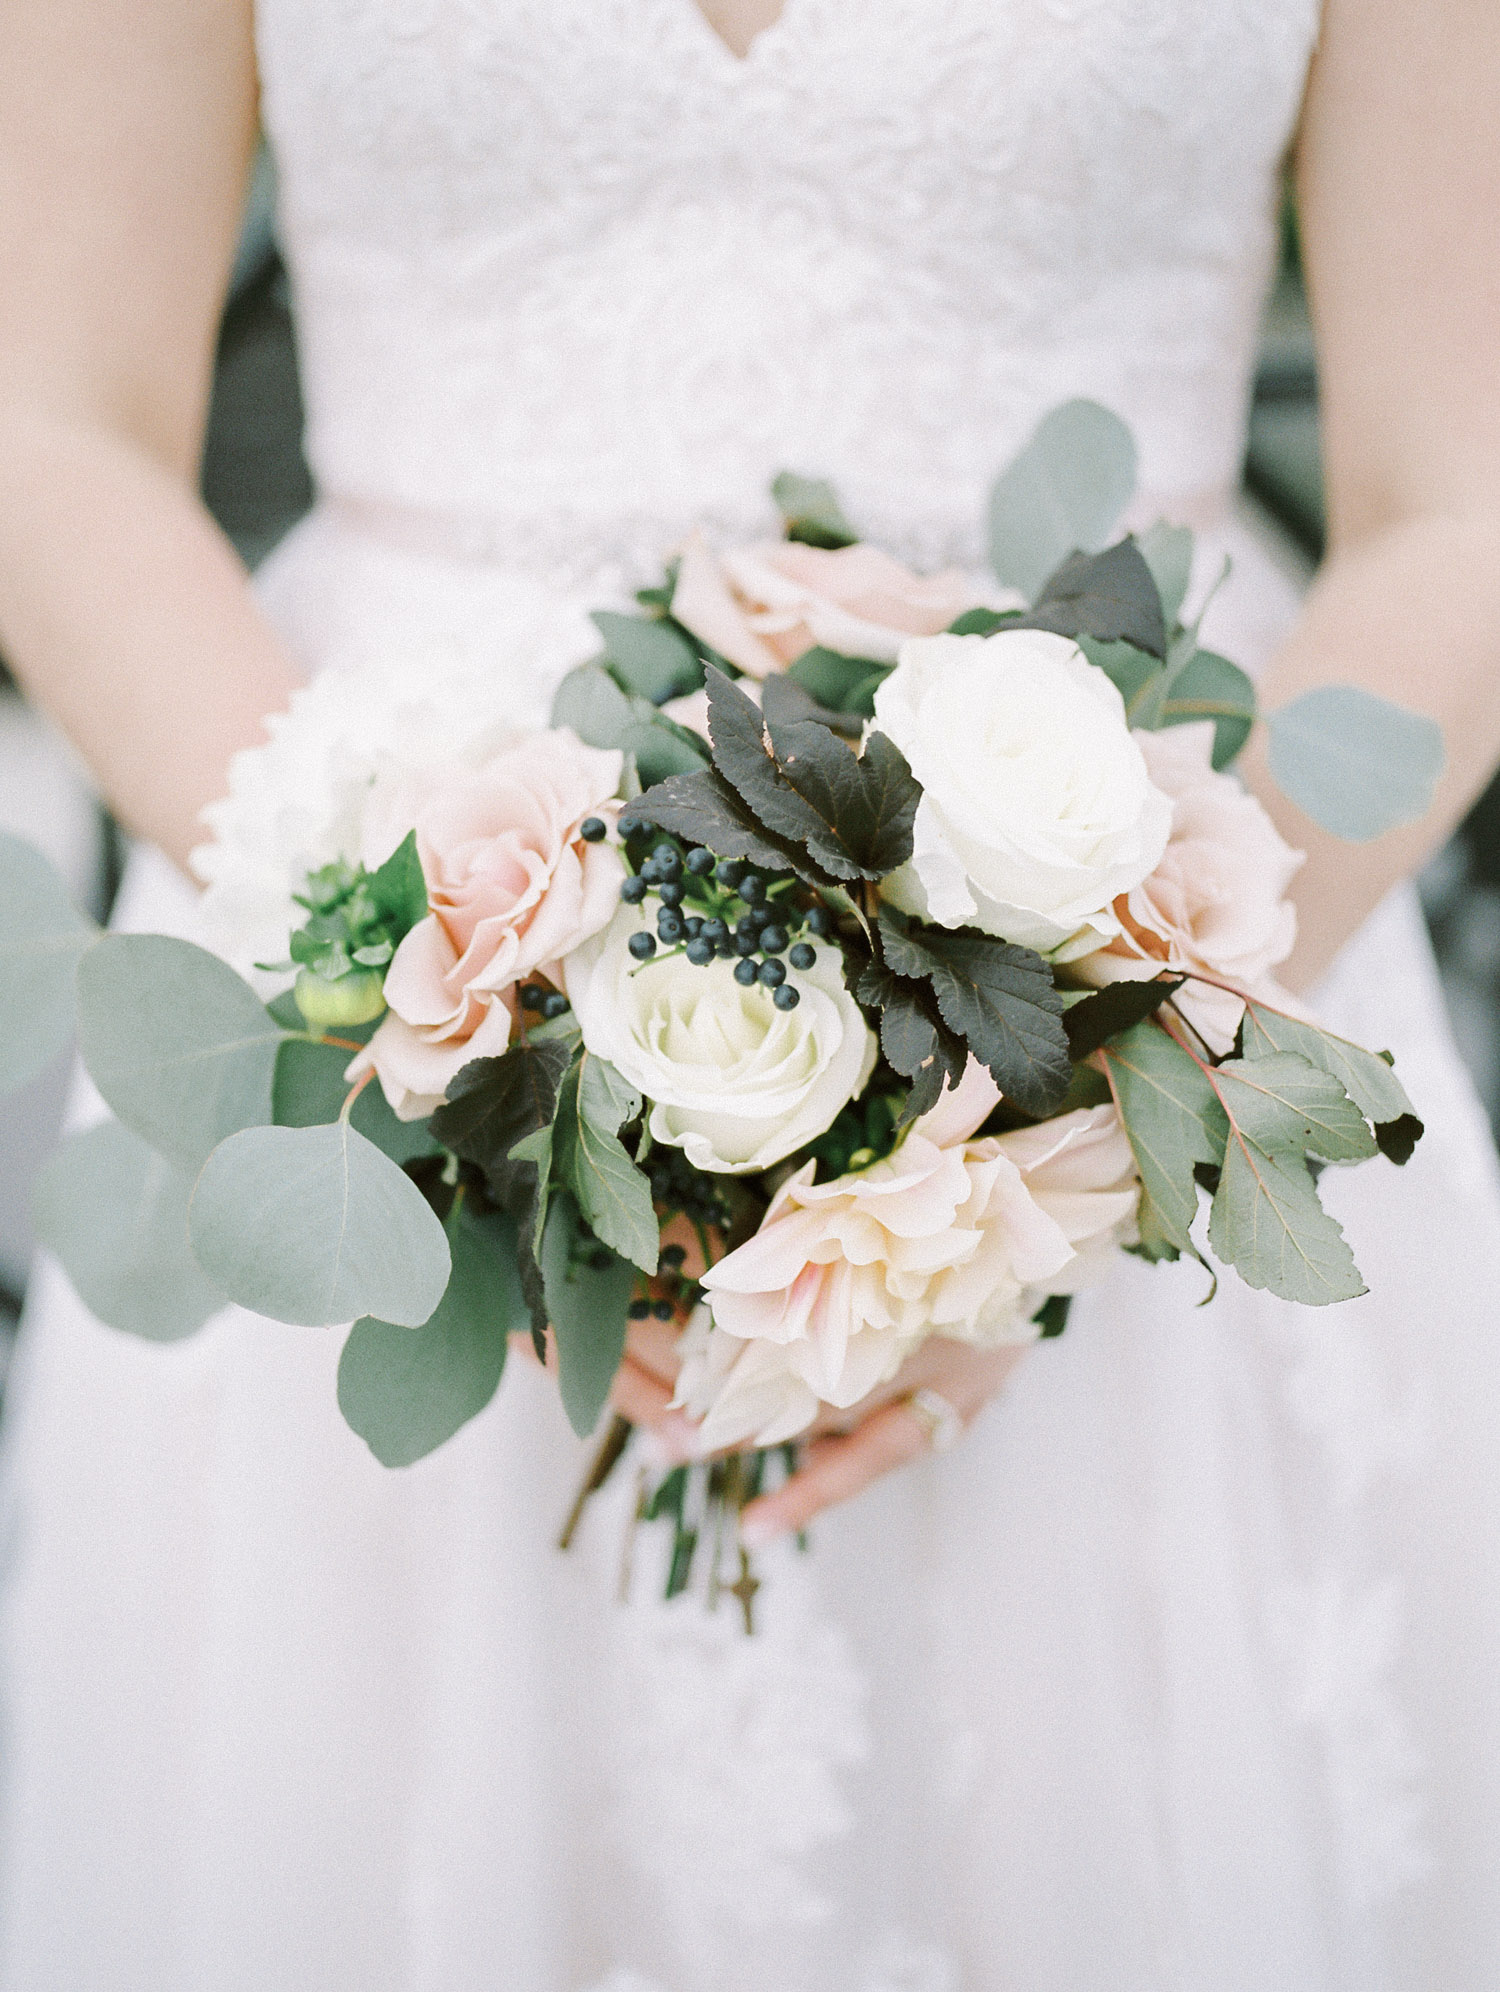 A bride holds a beautiful bouquet of white and pink roses, dahlias, berries, and seeded eucalyptus